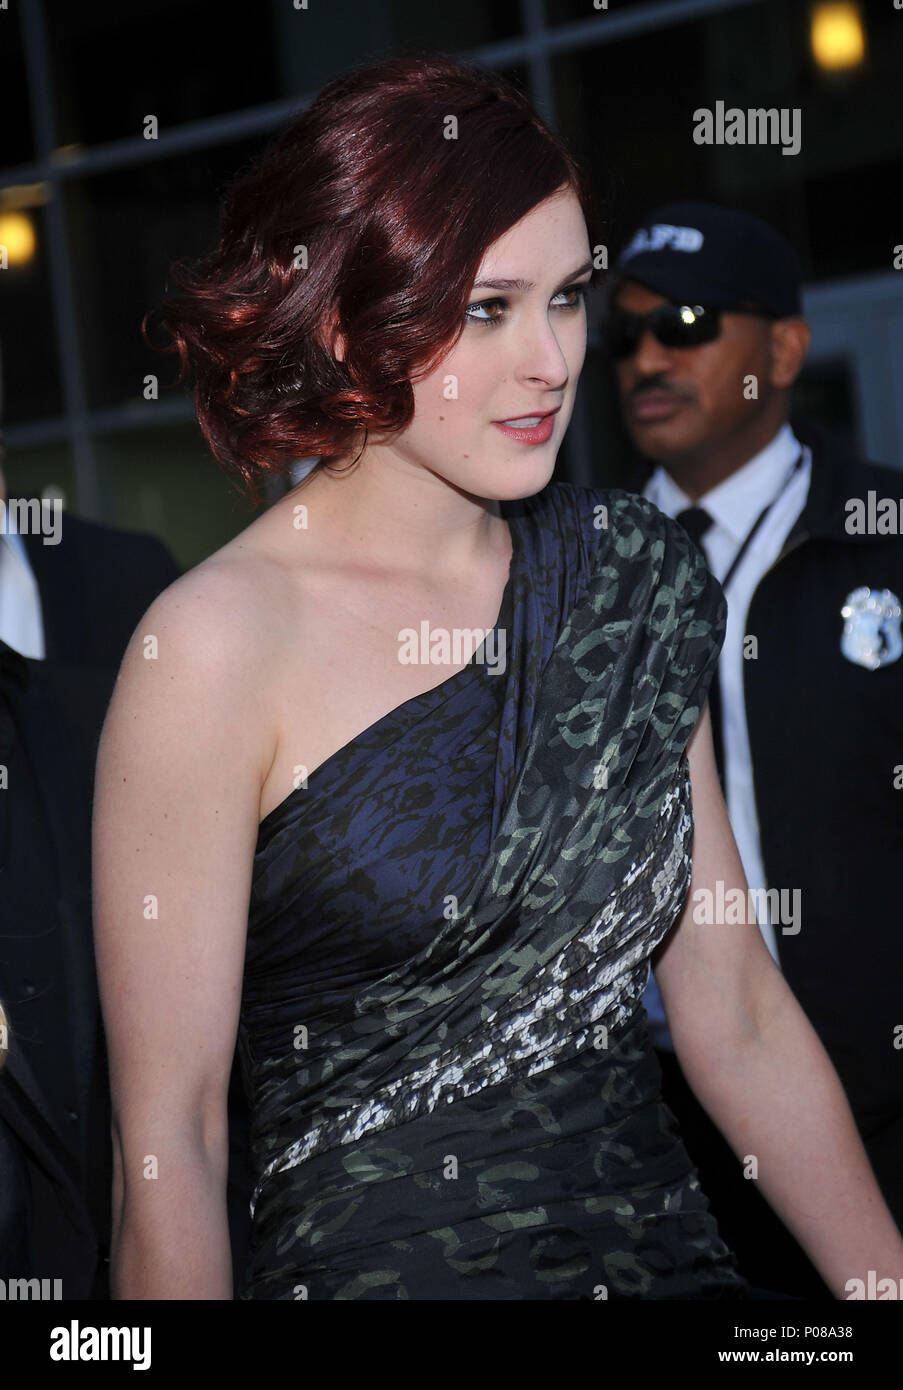 Rumer Willis _34   - The Joneses Premiere at the Arclight Theatre In Los Angeles.Rumer Willis _34 Red Carpet Event, Vertical, USA, Film Industry, Celebrities,  Photography, Bestof, Arts Culture and Entertainment, Topix Celebrities fashion /  Vertical, Best of, Event in Hollywood Life - California,  Red Carpet and backstage, USA, Film Industry, Celebrities,  movie celebrities, TV celebrities, Music celebrities, Photography, Bestof, Arts Culture and Entertainment,  Topix, vertical, one person,, from the year , 2010, inquiry tsuni@Gamma-USA.com - Three Quarters - Stock Image